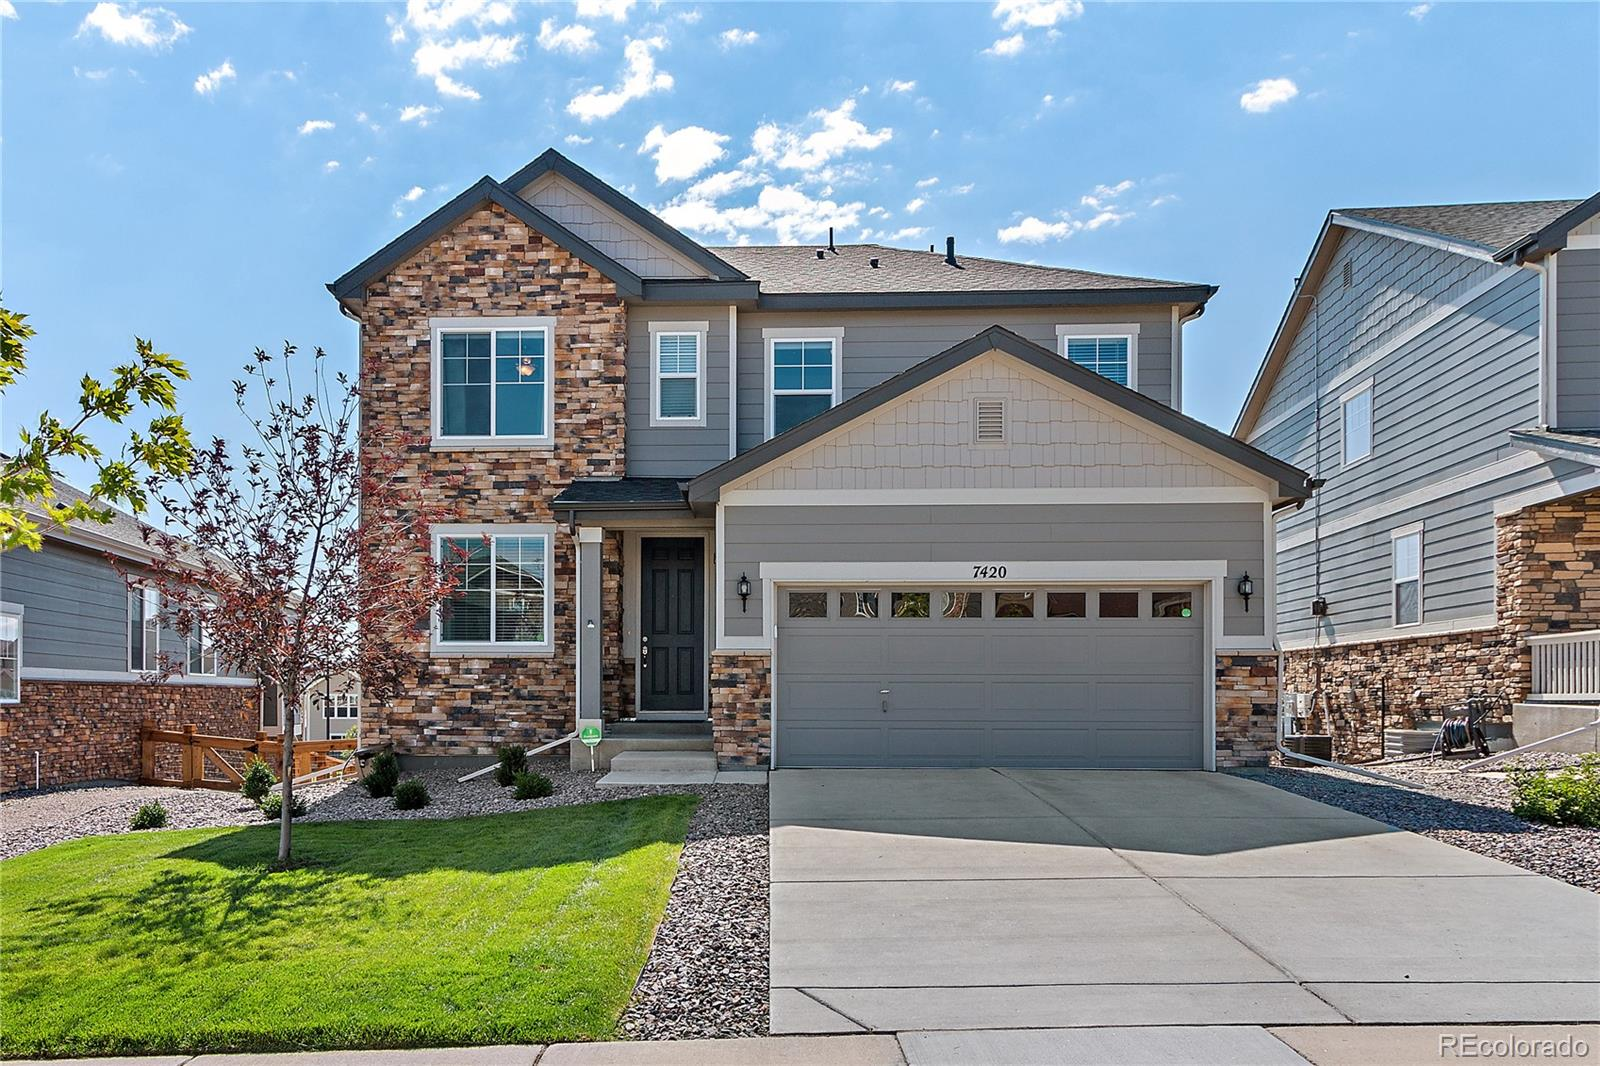 7420 S Old Hammer Way, Aurora CO 80016